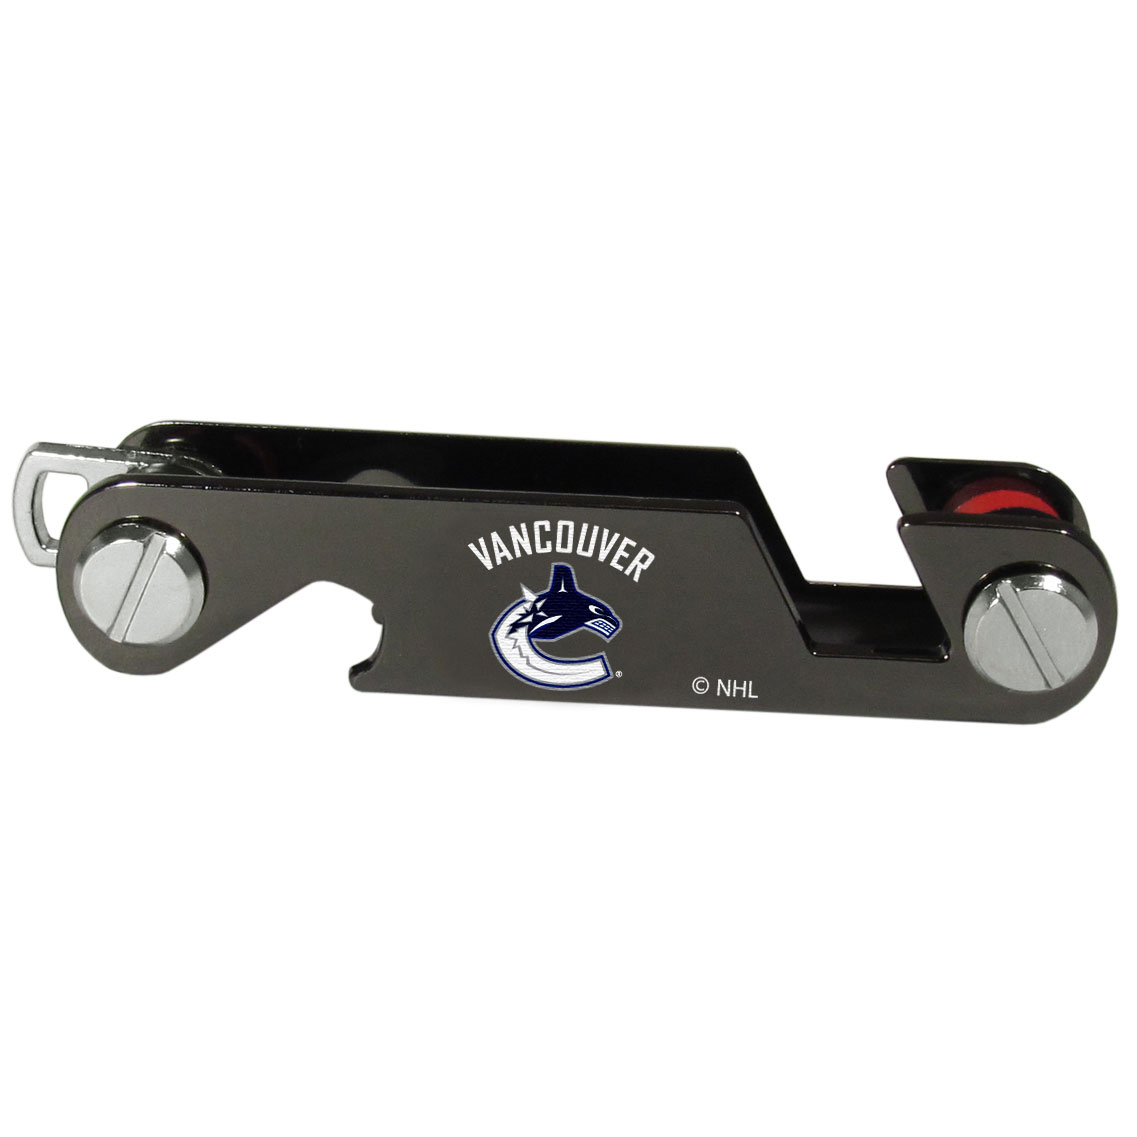 Vancouver Canucks® Key Organizer - This innovative key organizer stores your keys in a compact, easy to access bundle with Swiss style engineering. With the Vancouver Canucks® key organizer you can load up to 10 keys that zipper back into the organizer so that you never have to deal with keys poking you in your pocket, damaging your purse or simply creating a ton of noise. There is a handy loop piece to attach your larger car key or fob.